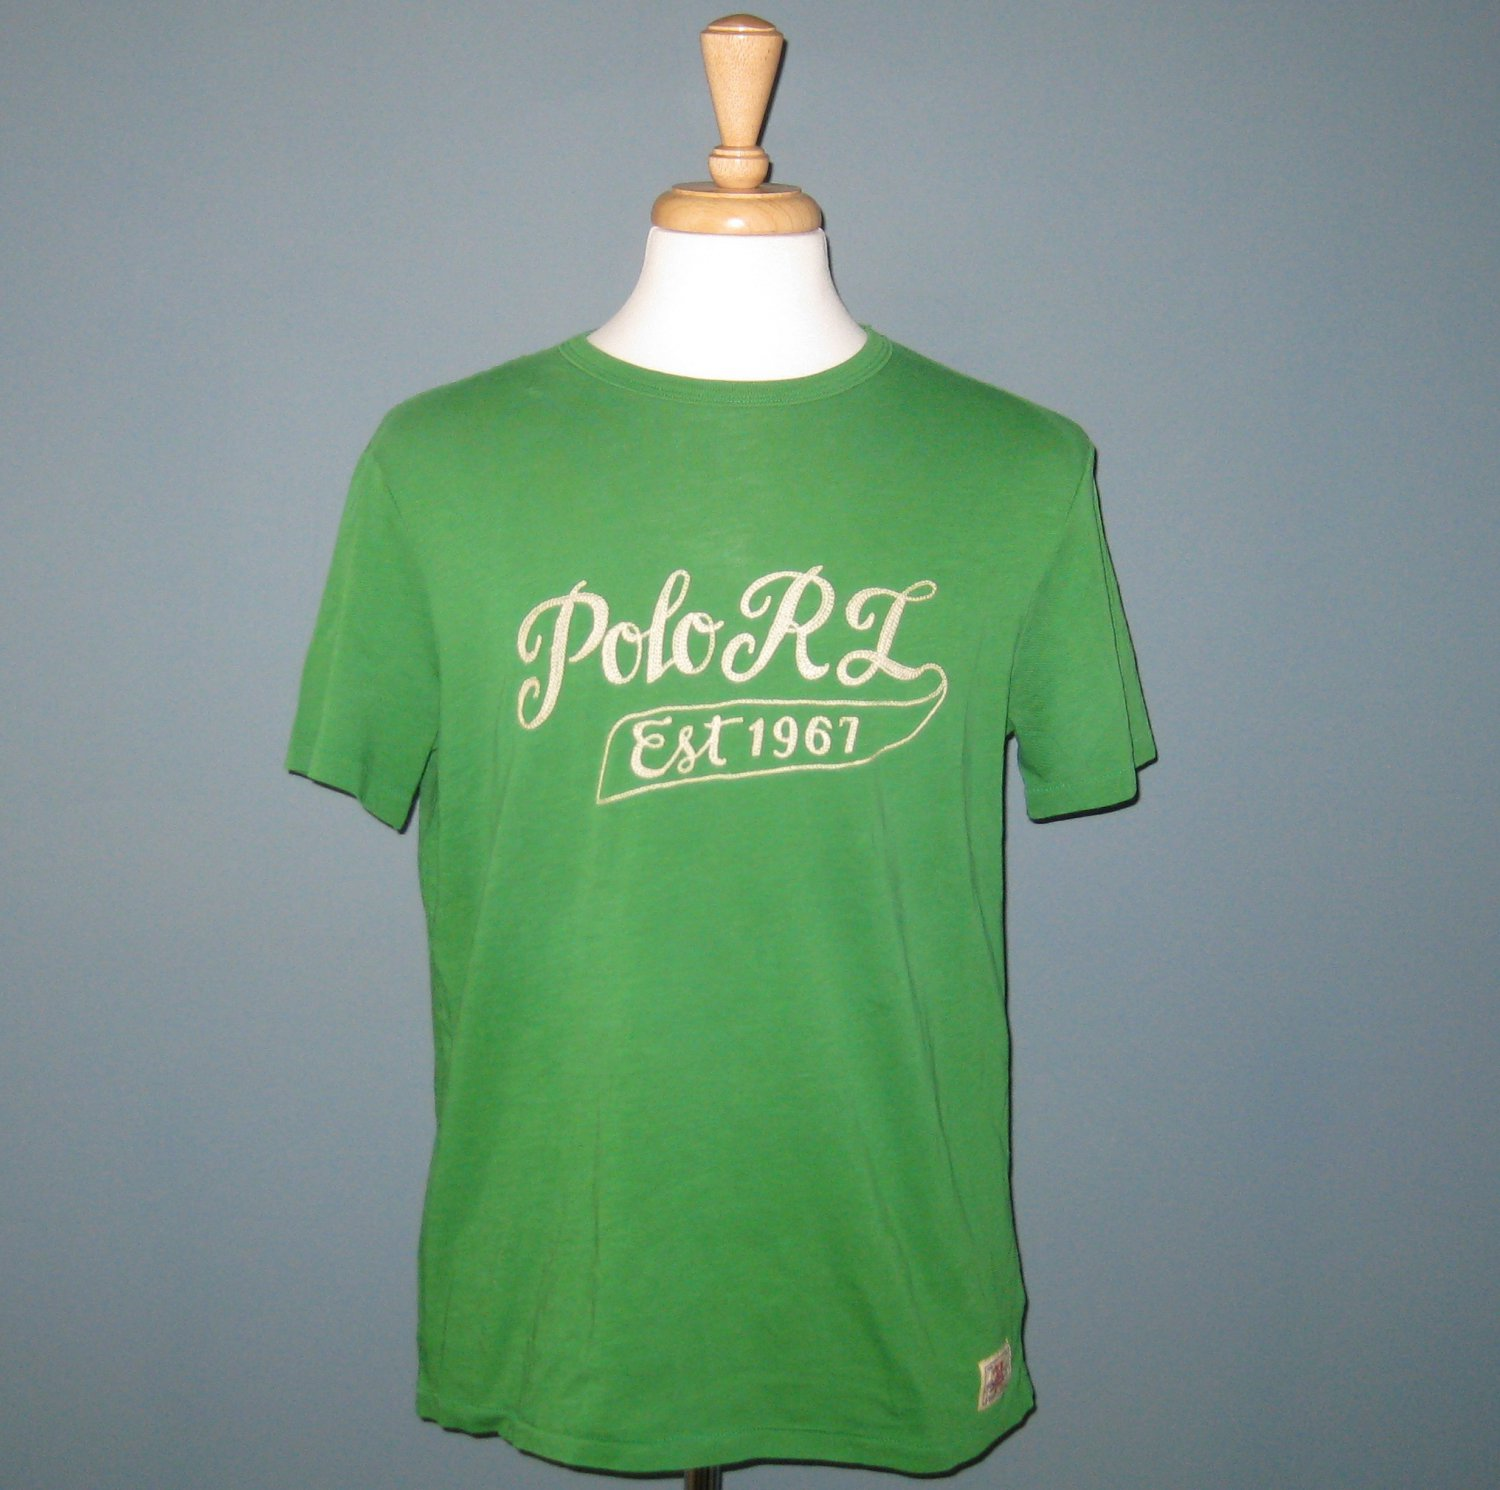 NWT Polo Ralph Lauren Green 'Polo RL Est 1967' Embroidered S/S 100% Cotton T-Shirt - XL